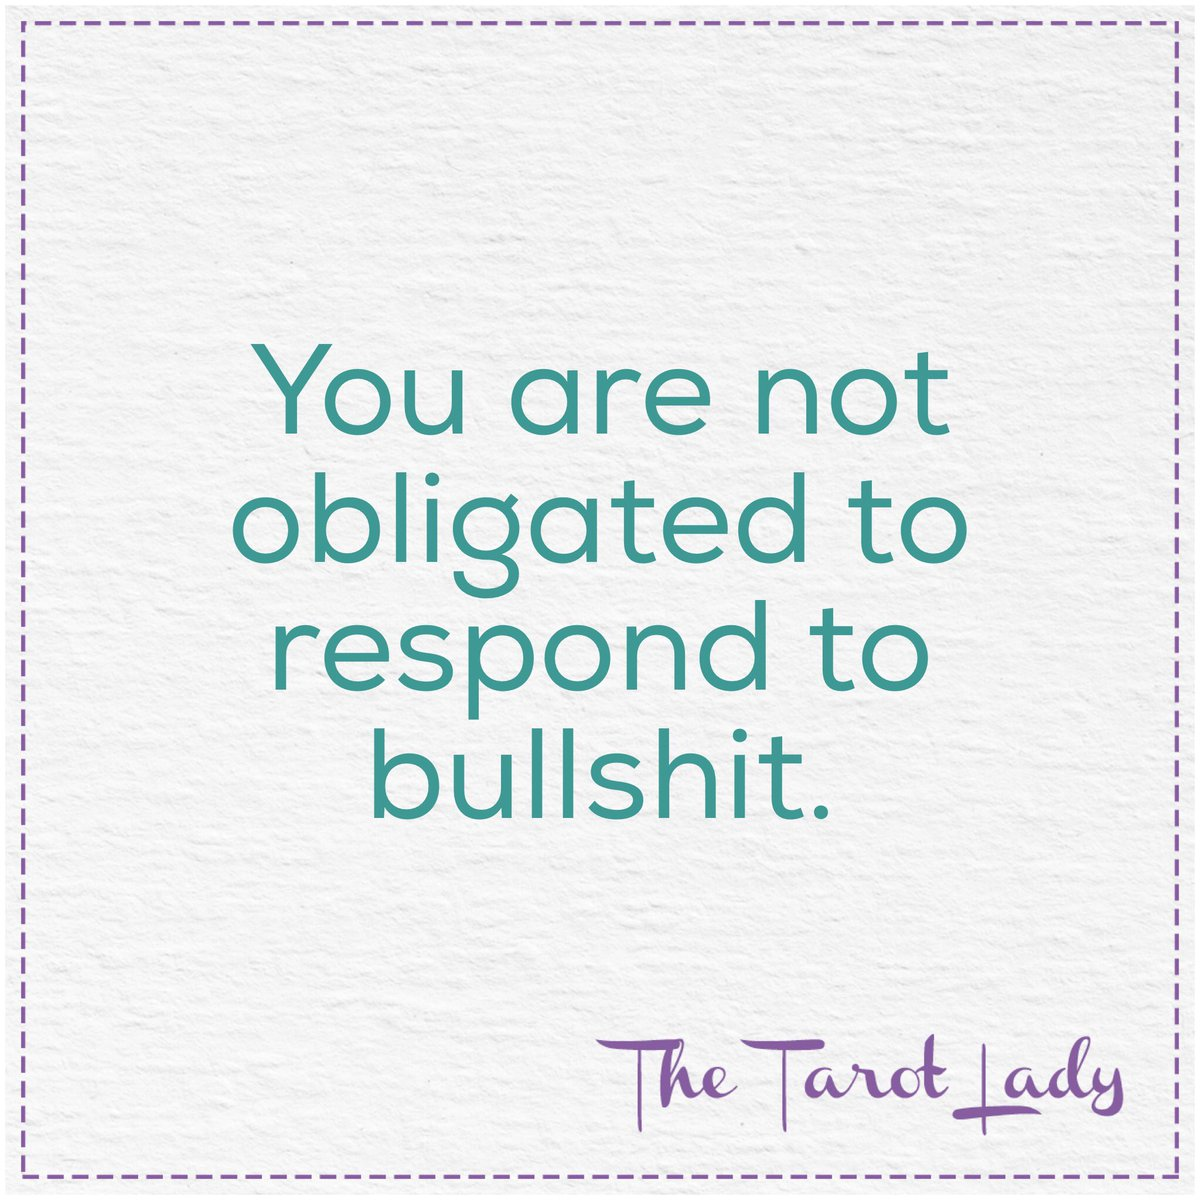 You are not obligated to respond to bullshit. #wisdom https://t.co/cWnIPOj5Bp